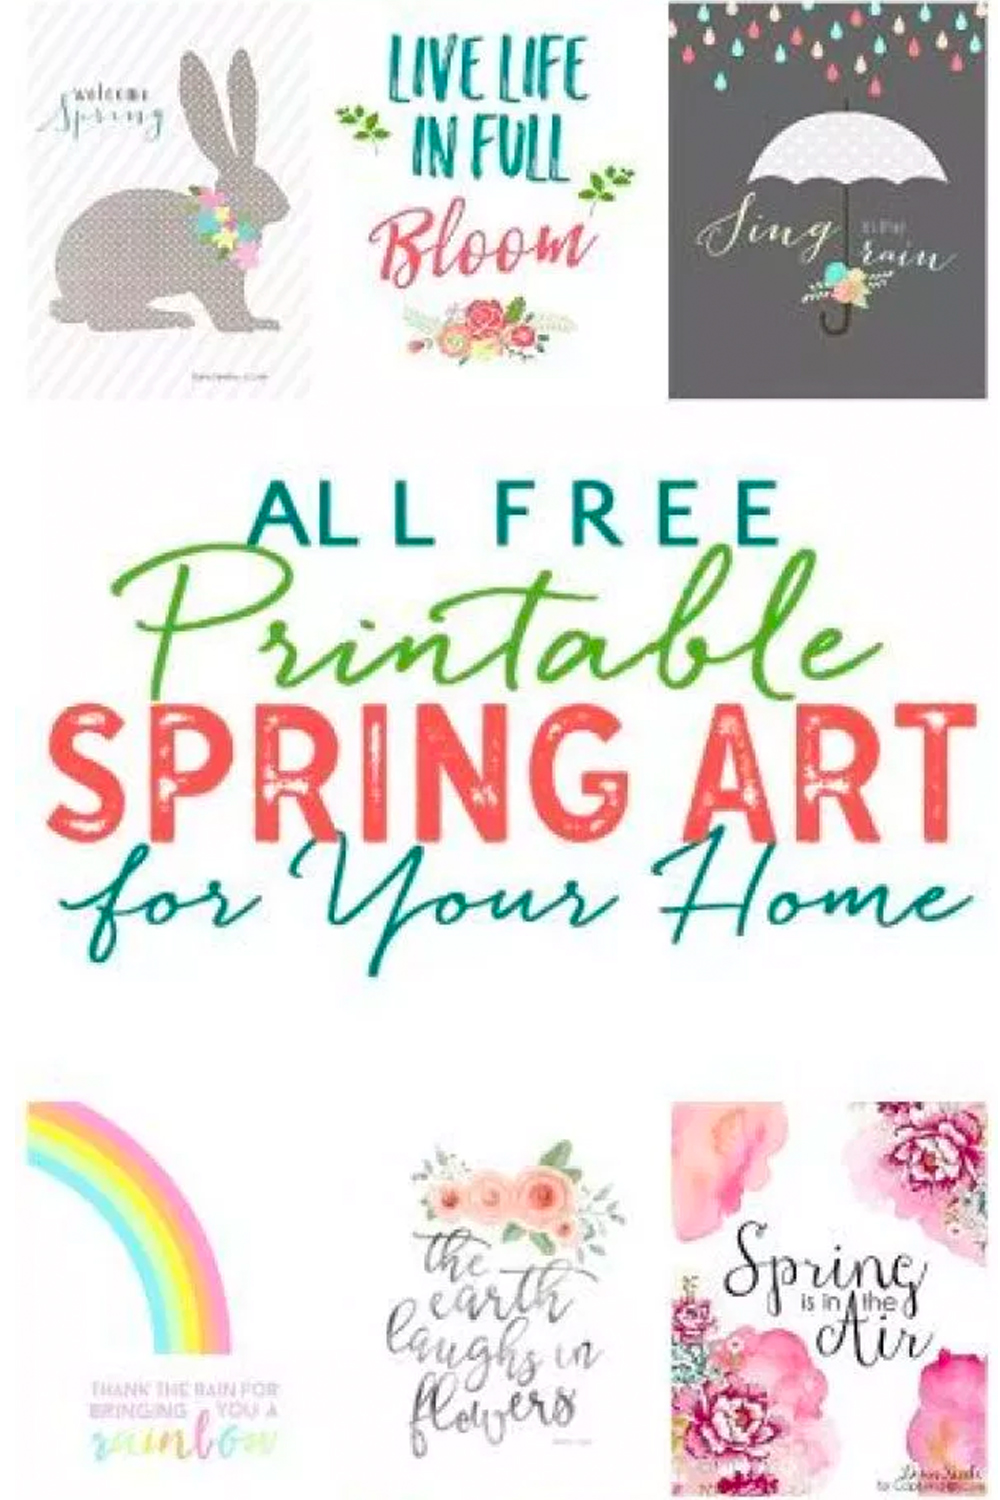 photo regarding Spring Printable called Beautiful Free of charge Spring Printables: Spring Artwork For Your House